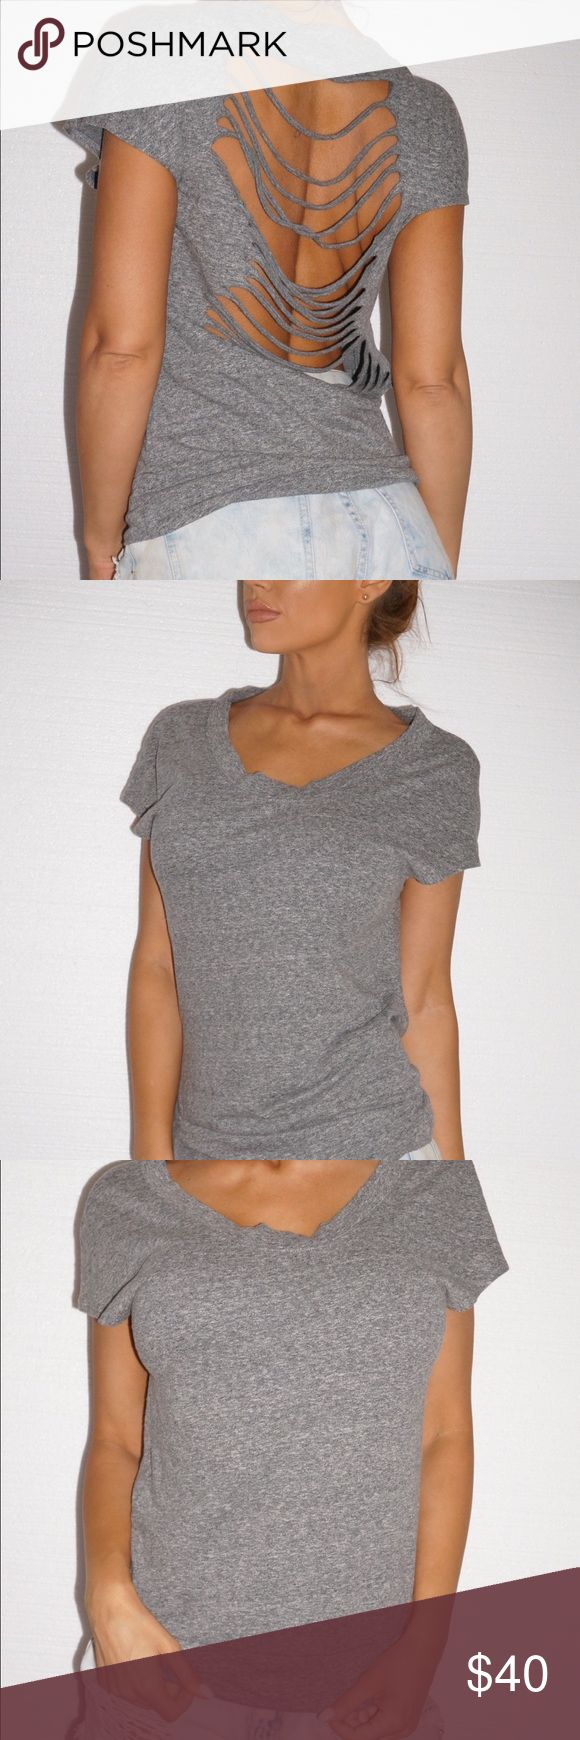 Super sexy Gray BEBE ripped shirt Thick shirt/sweater type material to hide nips so you can go bra less :) this shirt is LIFE !!! Fits XS-M bebe Tops